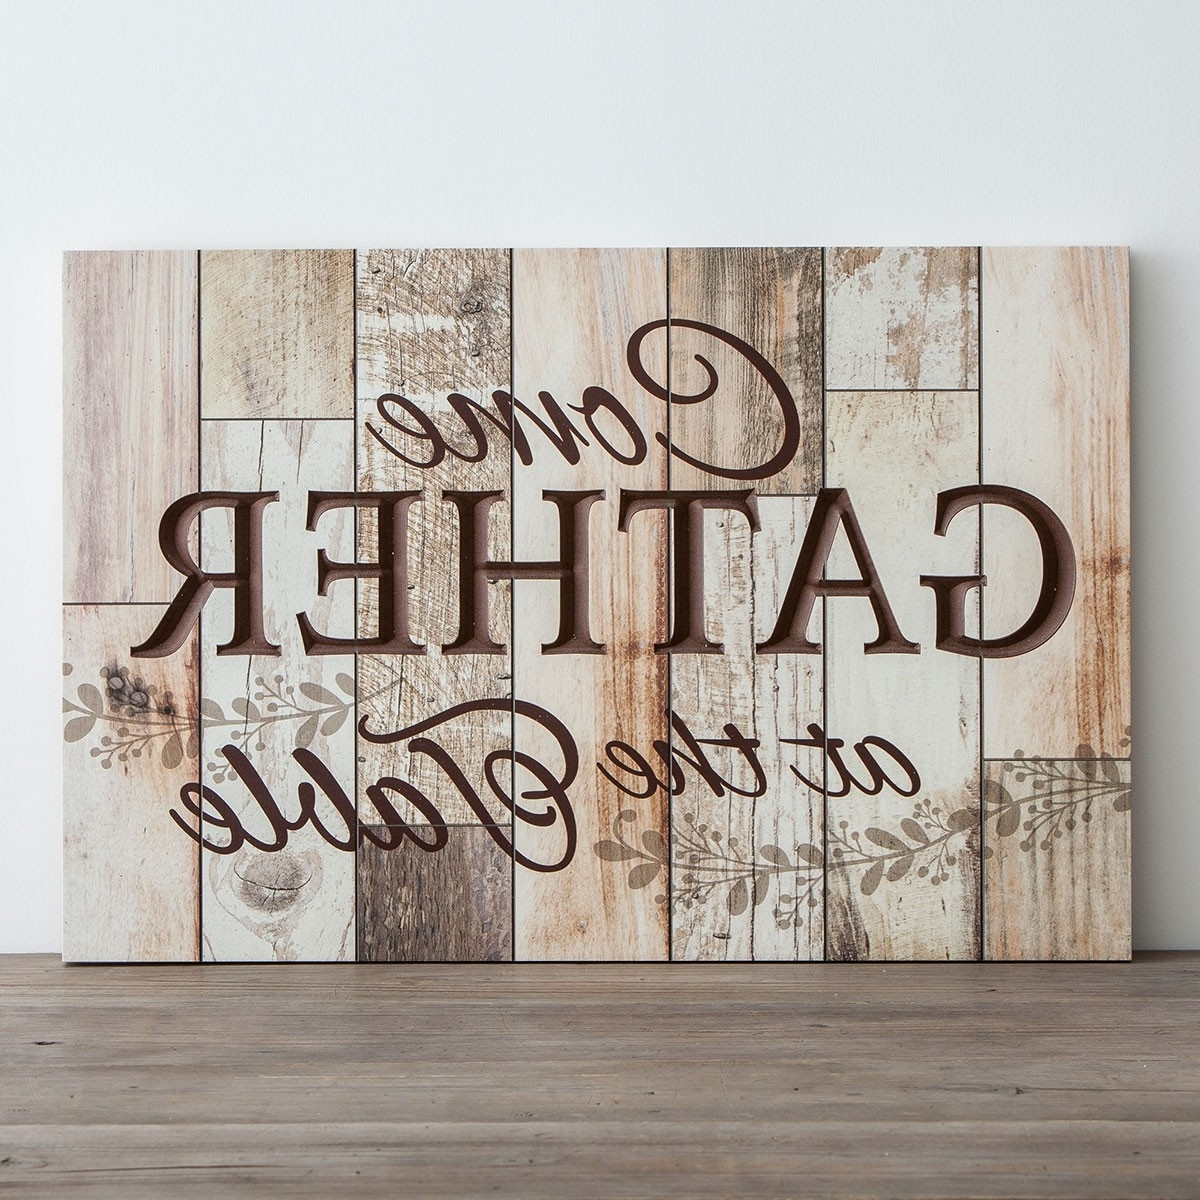 Most Recent Wooden Wall Art Intended For Come Gather At The Table – Wooden Wall Art (View 8 of 15)